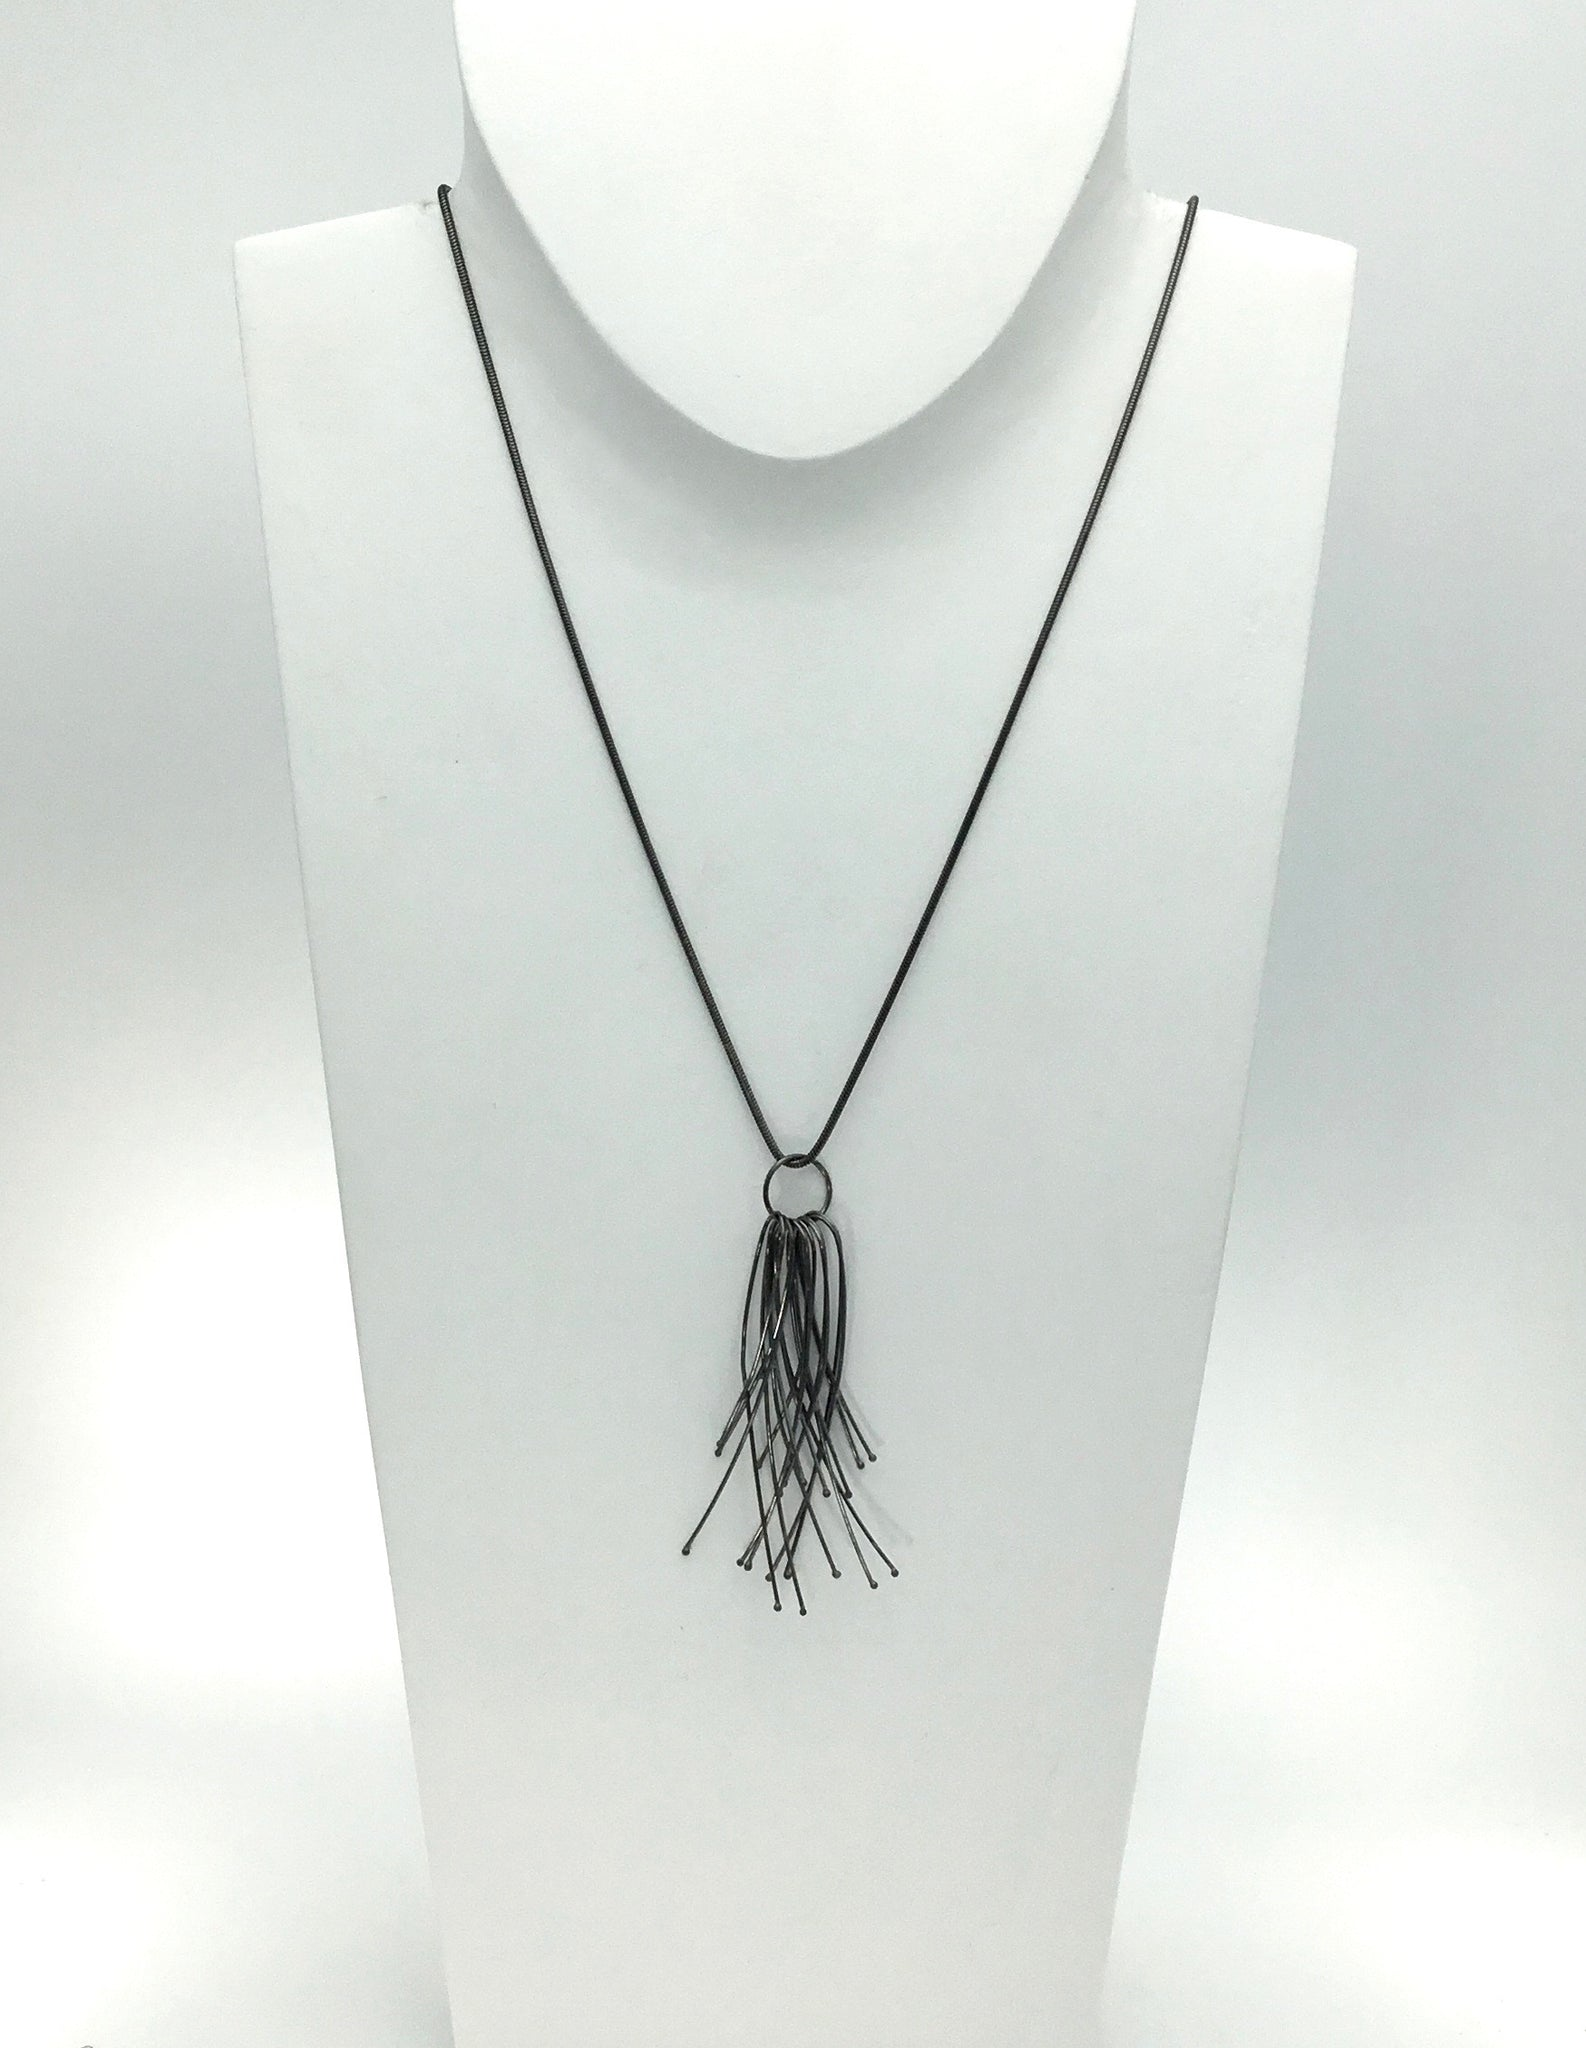 Materia Vento Necklace